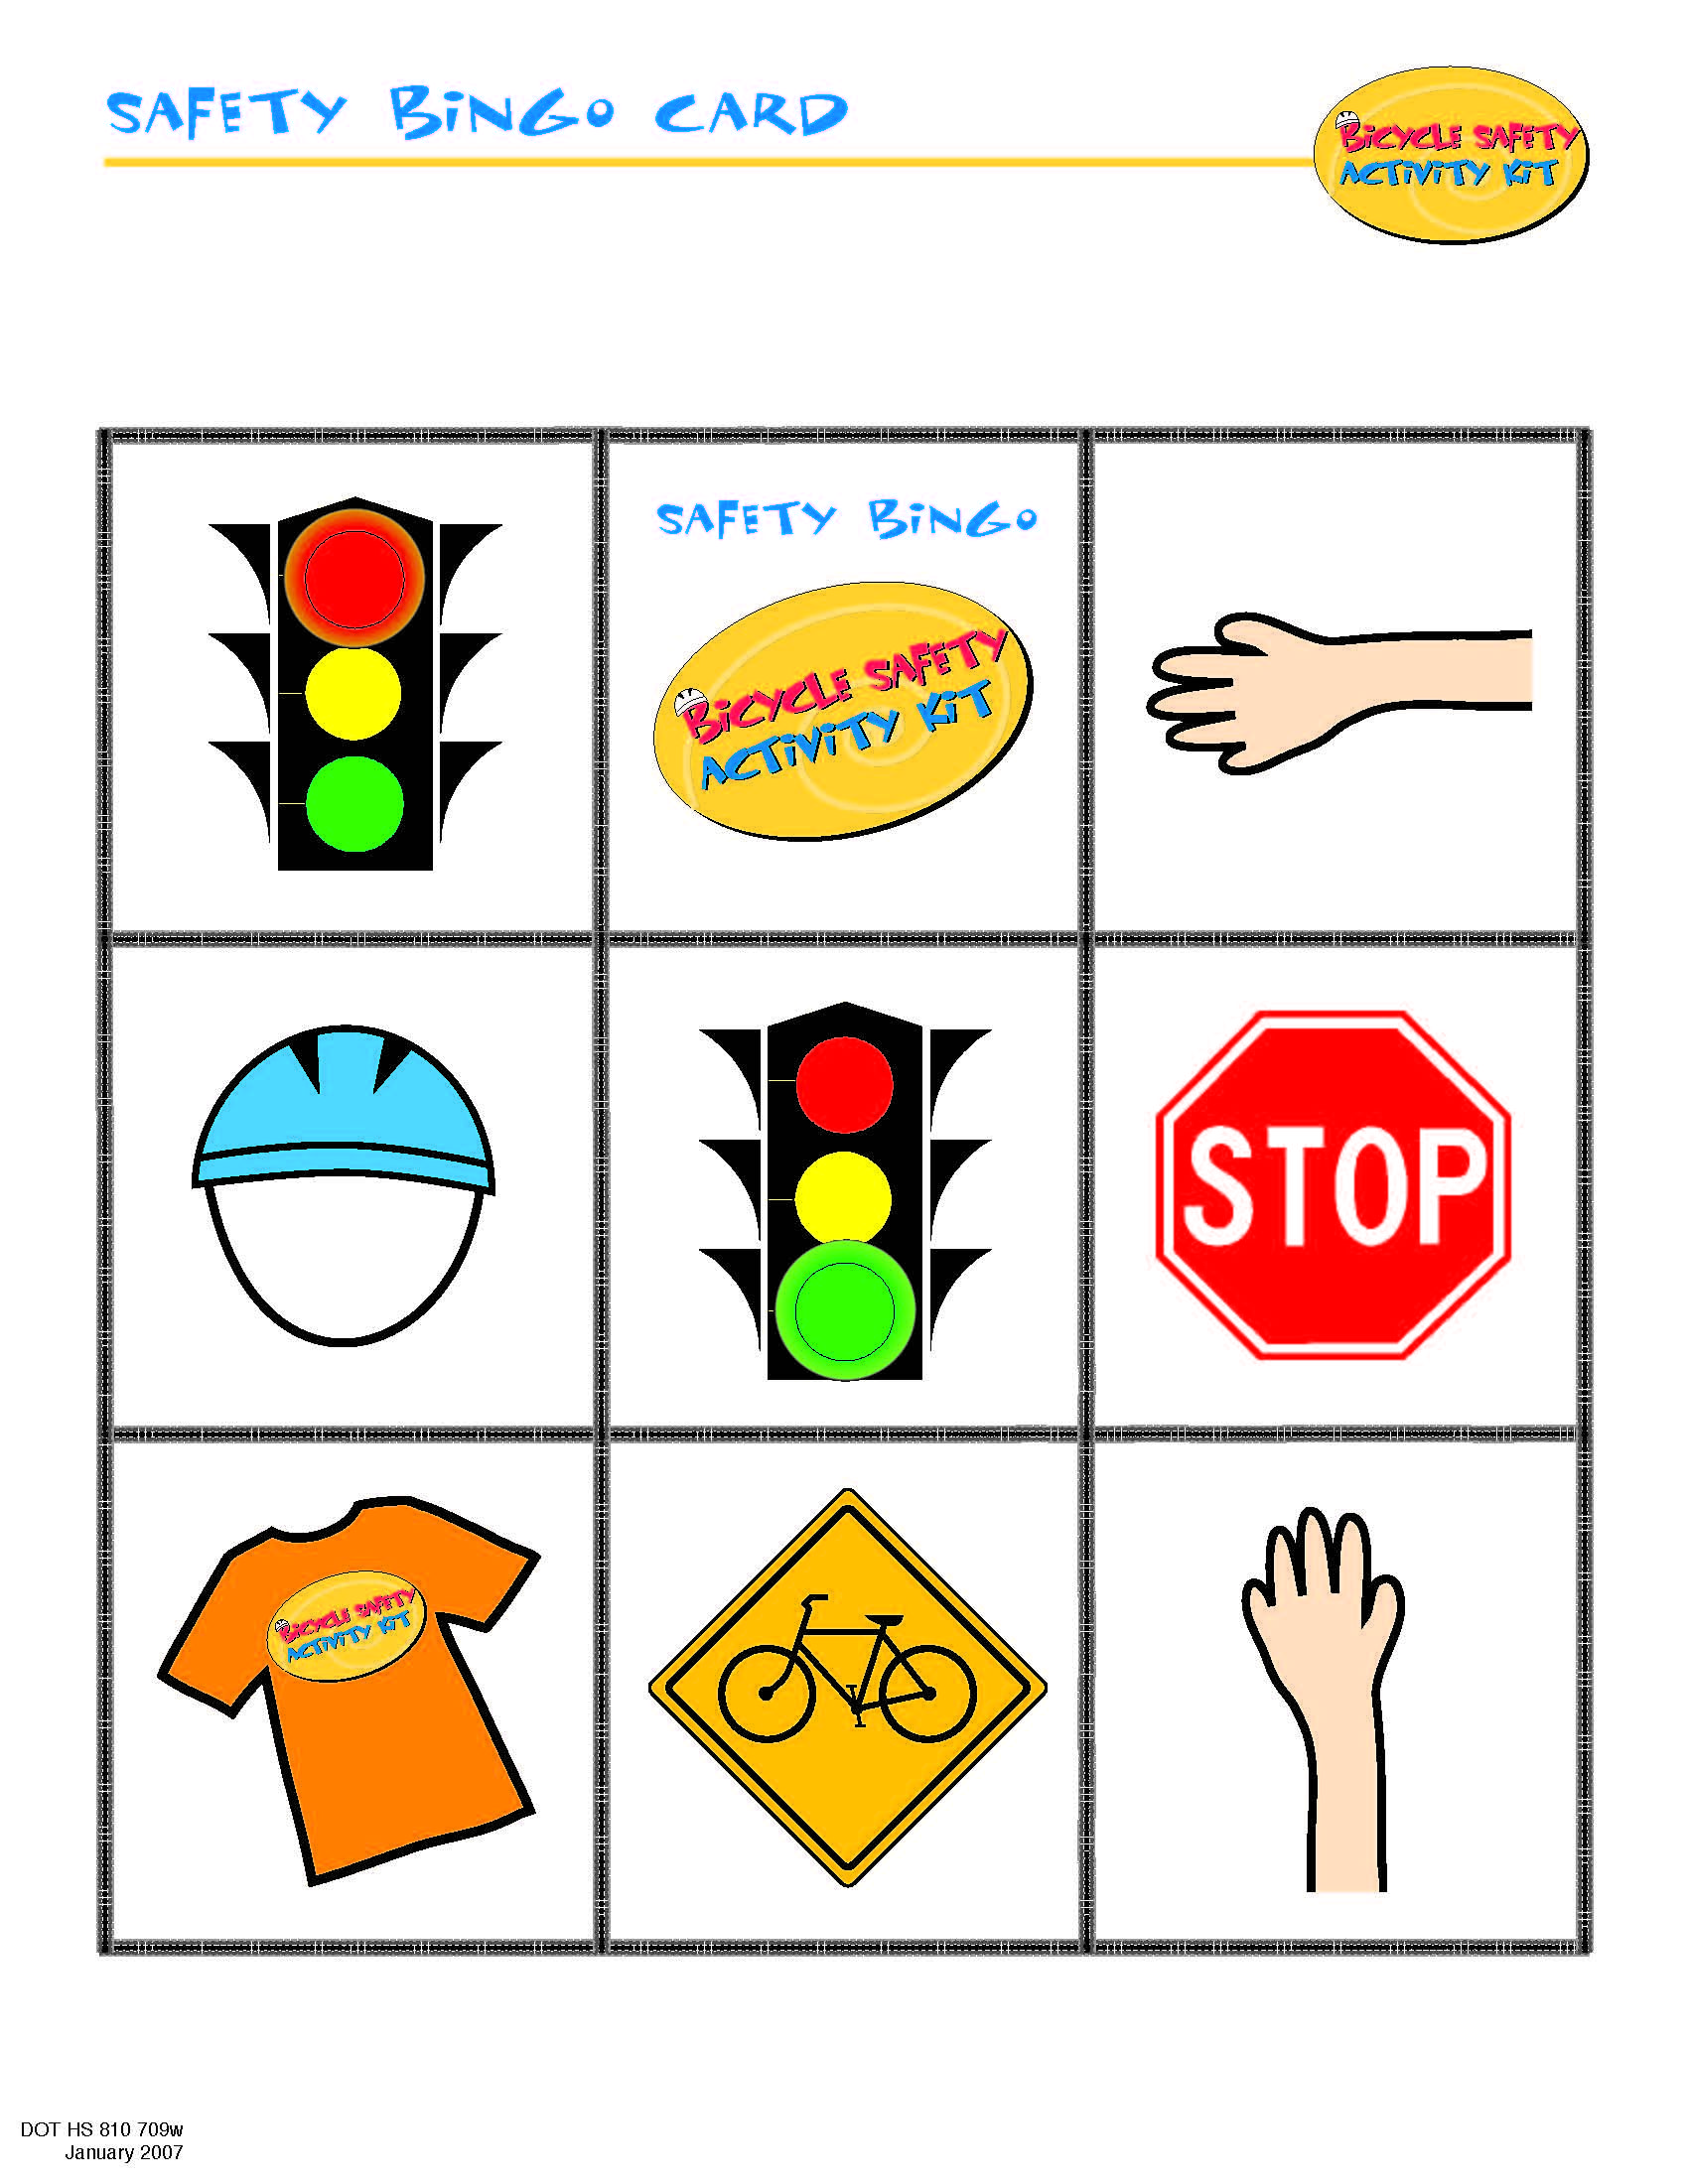 Bike Safety Bingo Card Staying Safe (Summer Camp